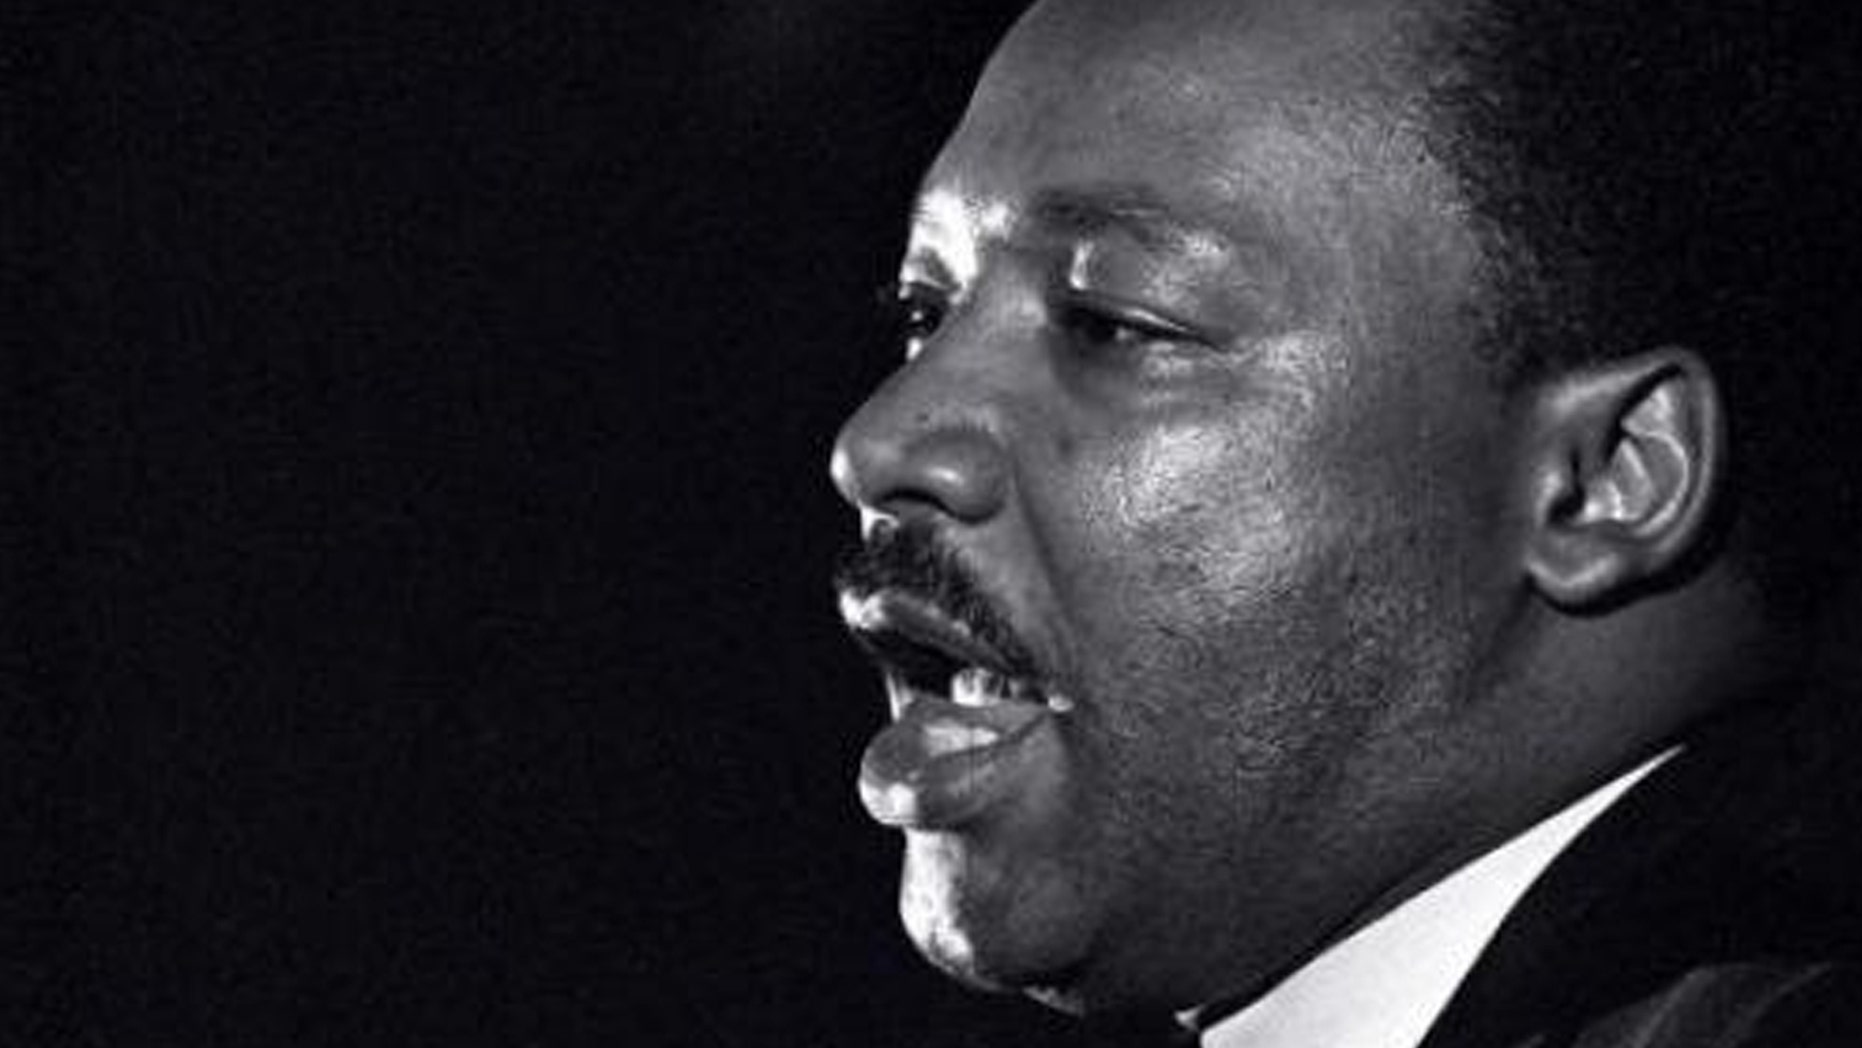 A dossier released as part of the JFK files says the Rev. Dr. Martin Luther King Jr. had affairs with multiple women, according to published reports.